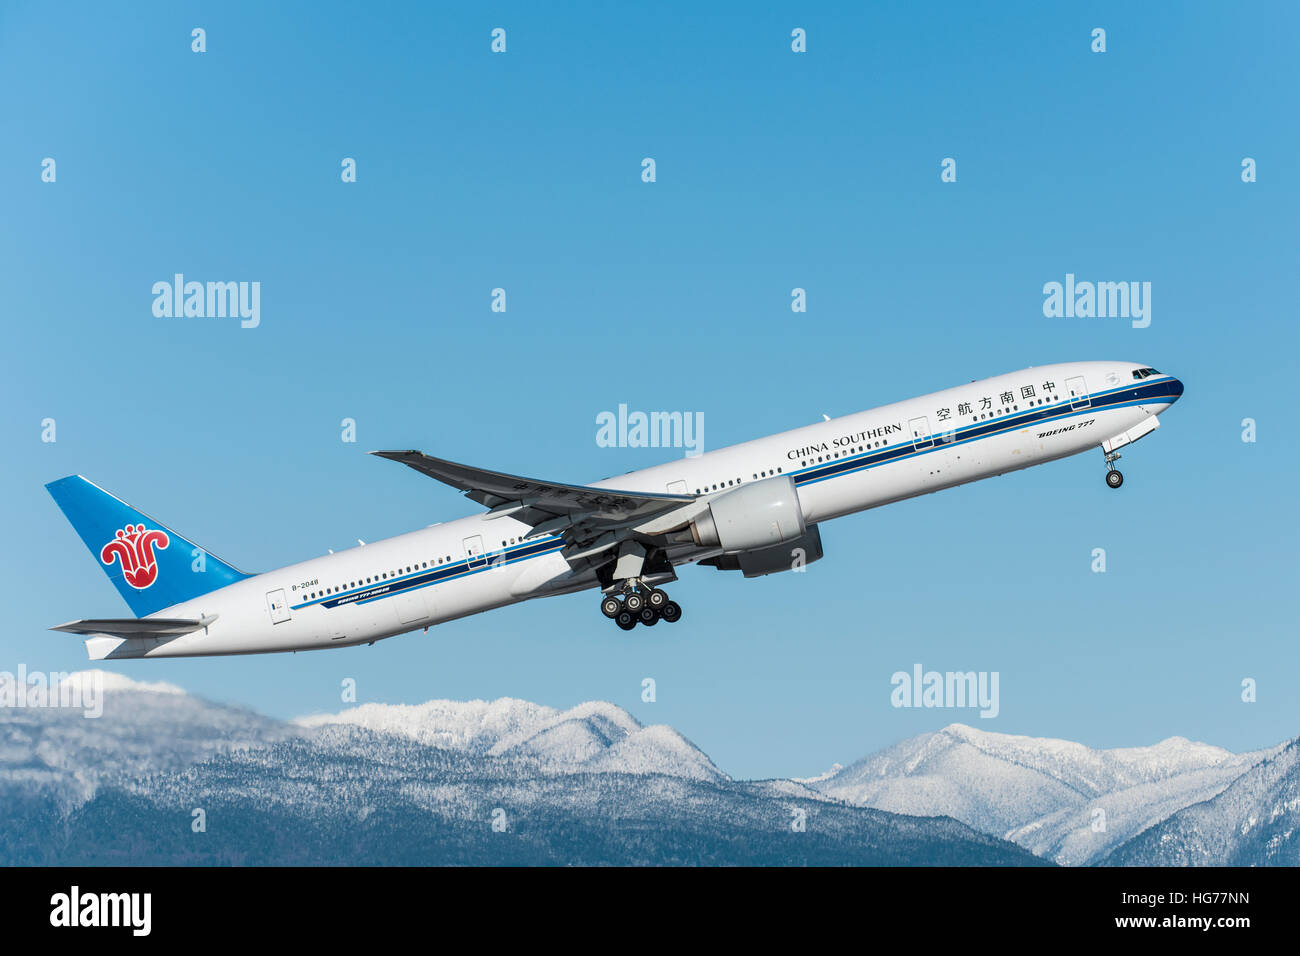 China Southern Boeing 777 airborne after take off from Vancouver International airport. - Stock Image